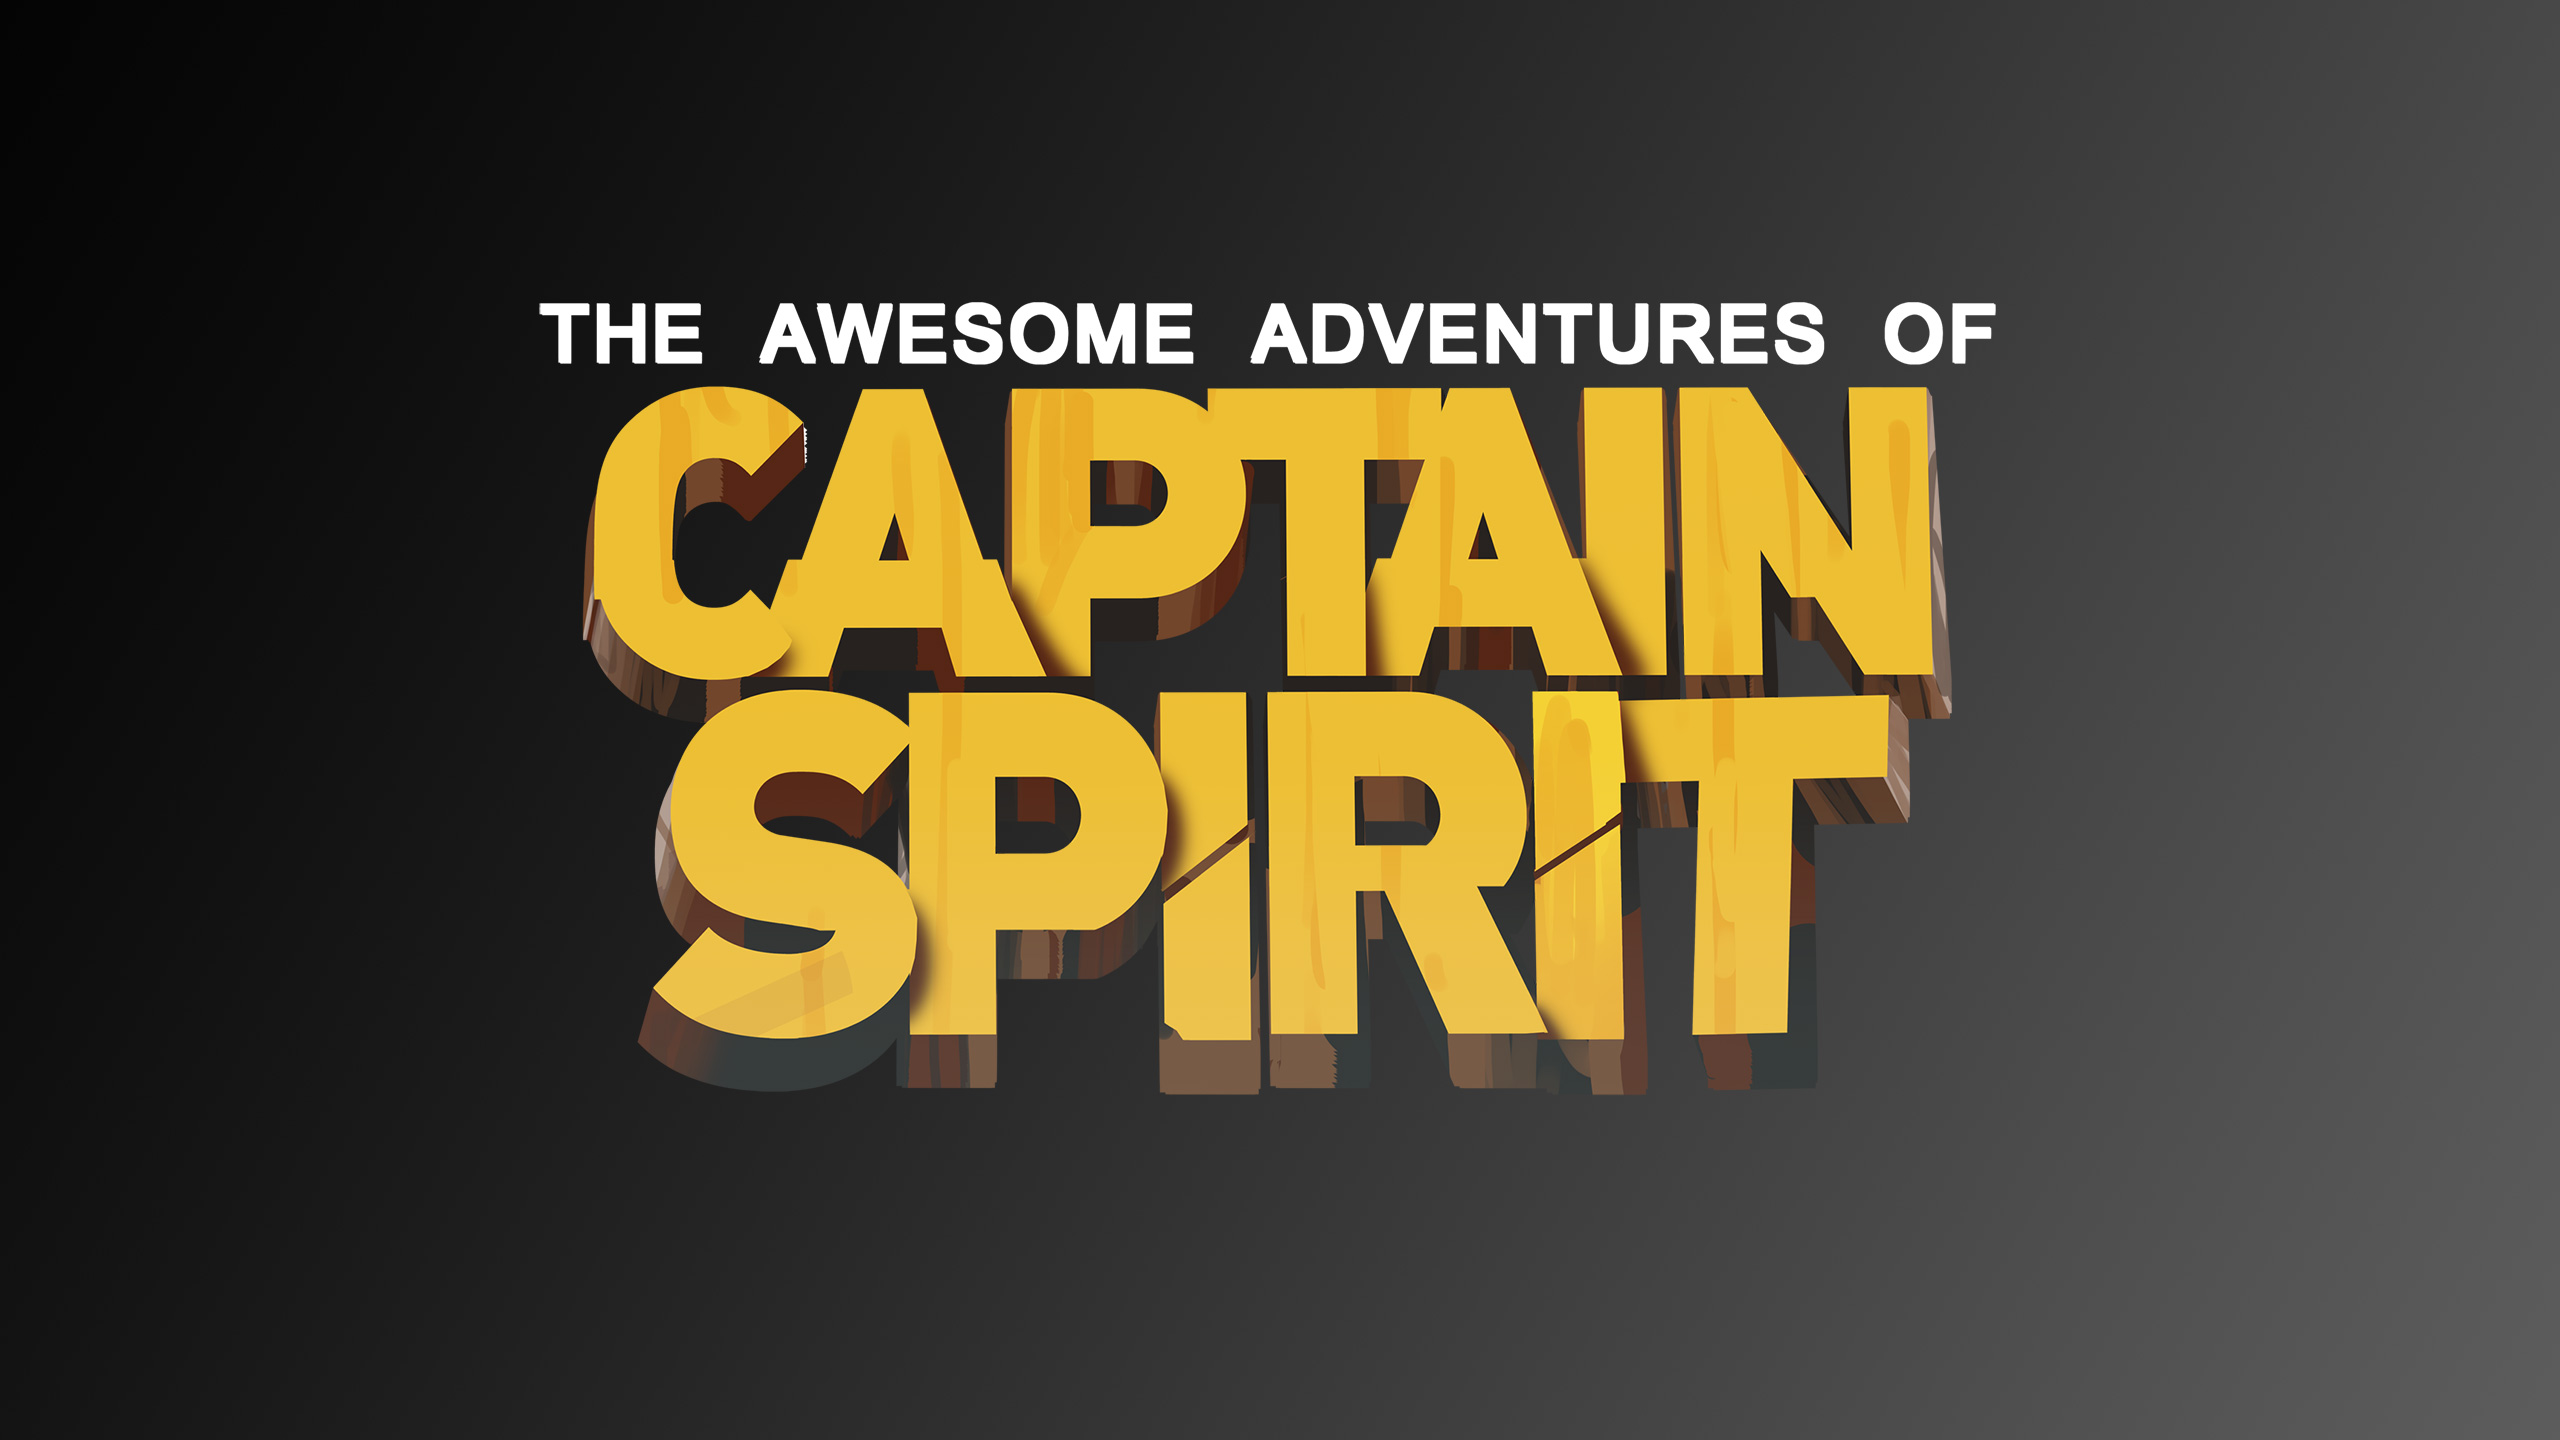 the awesome adventures of captain spirit logo, hd games, 4k